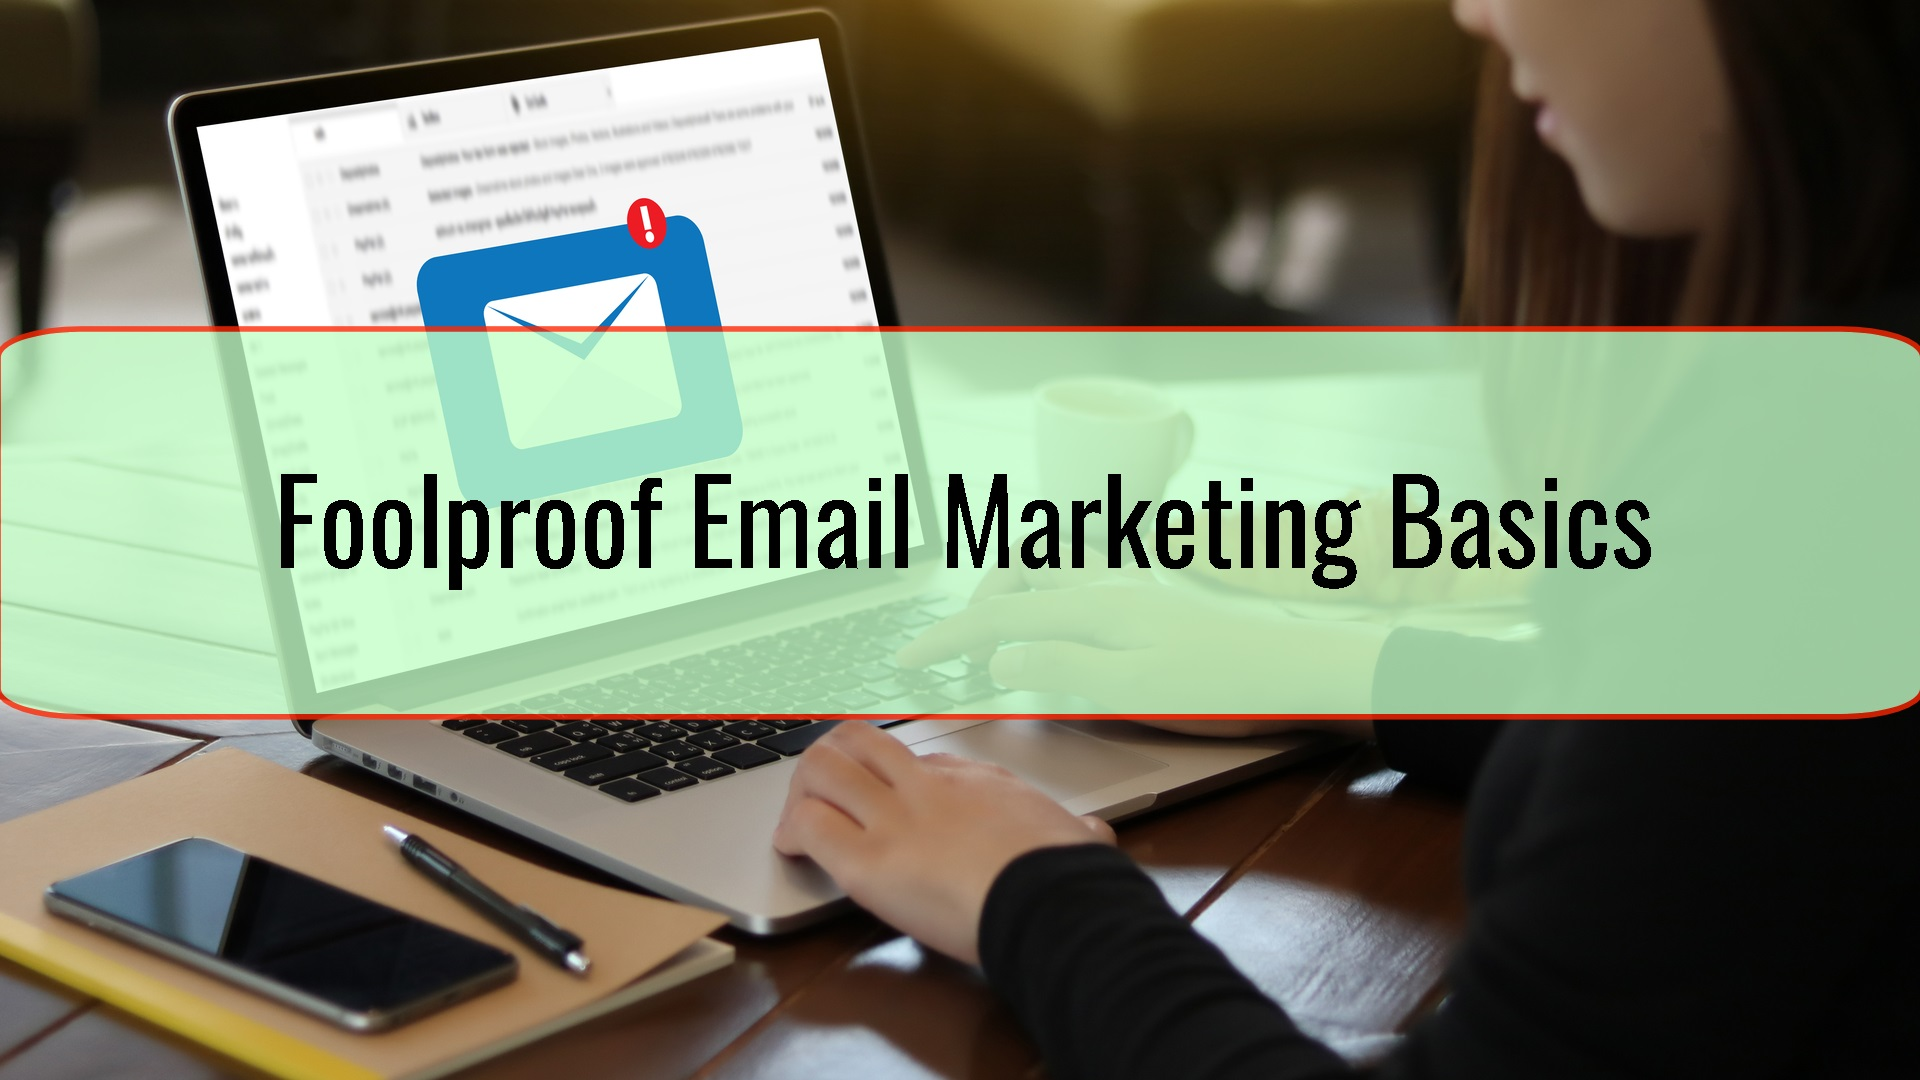 Foolproof Email Marketing Basics